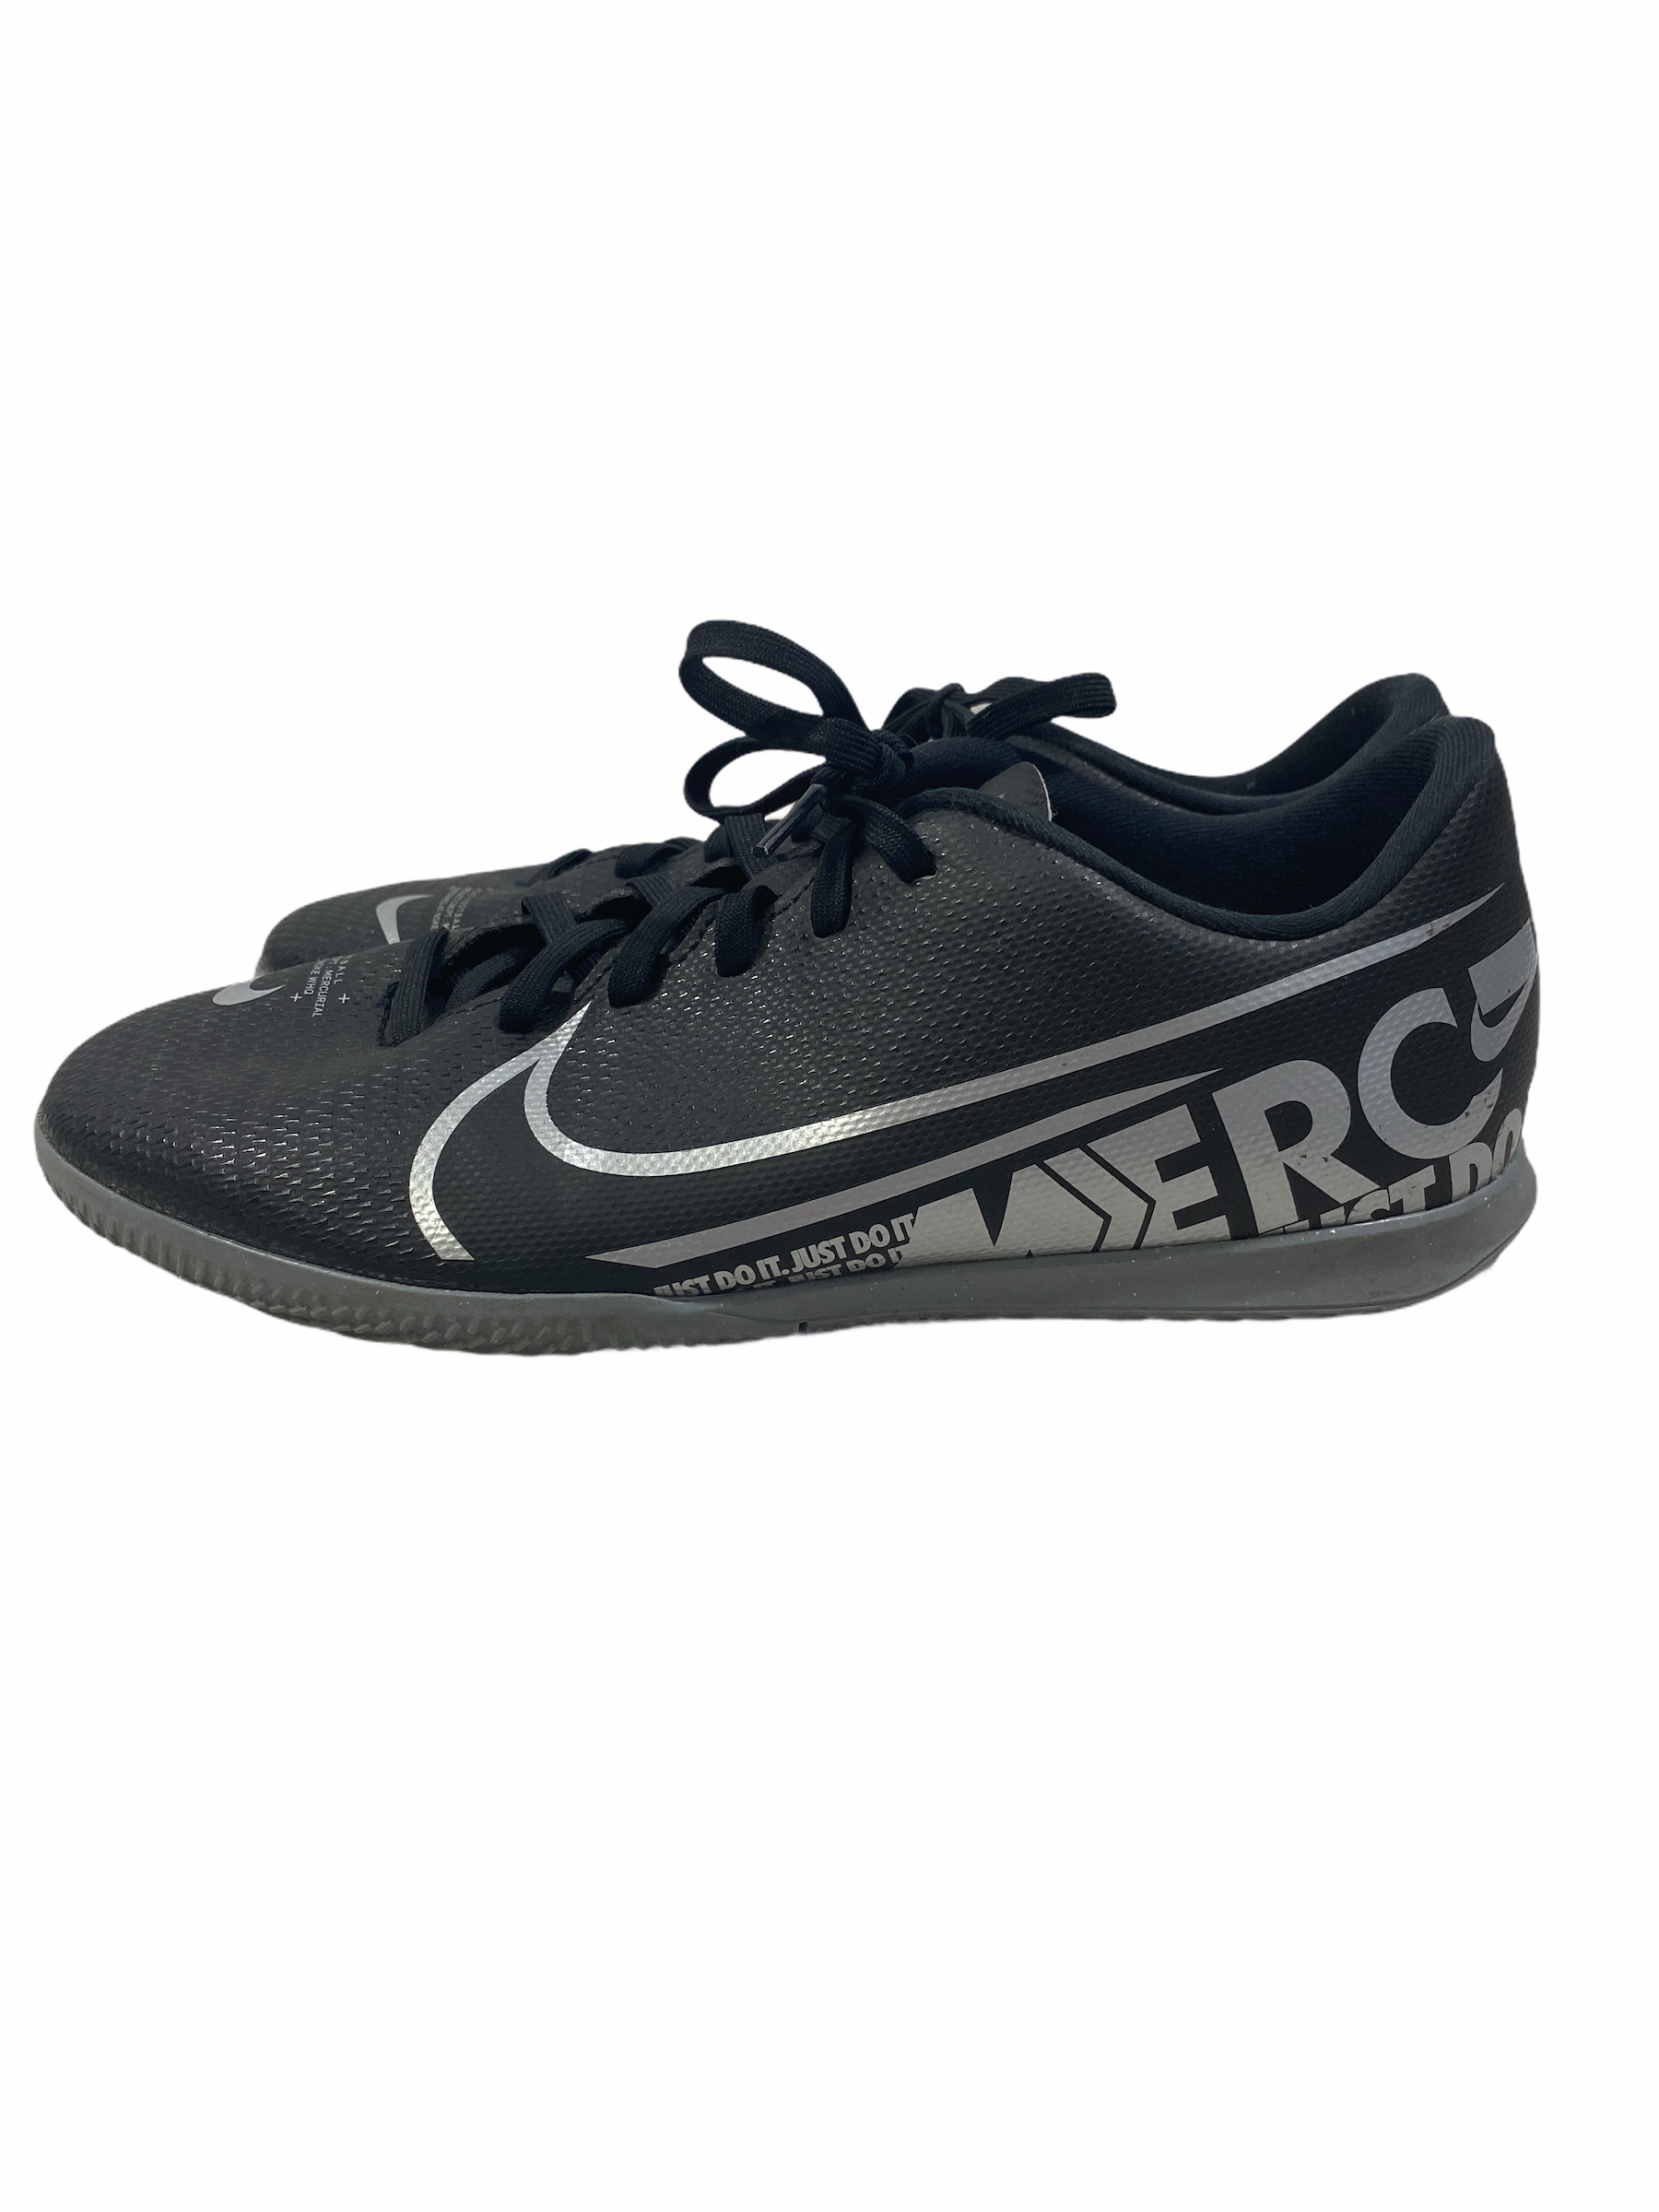 Nike Black Indoor Soccer Shoes (size 8.5Y)